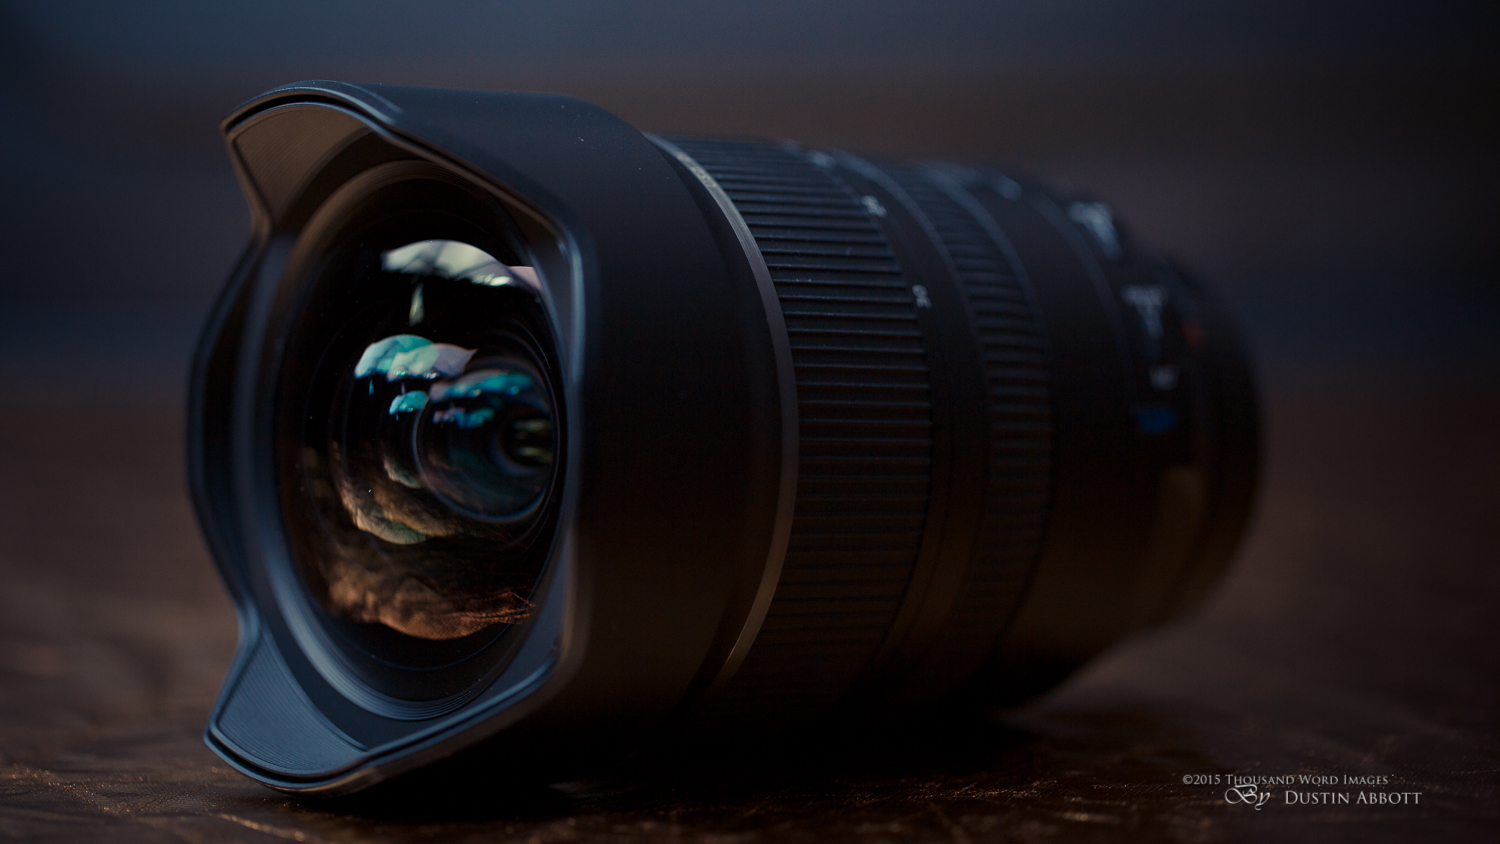 I 2019ve noted that the tamron has a bulbous front element (like similar f/28 lenses from nikon, tokina, and samyang)